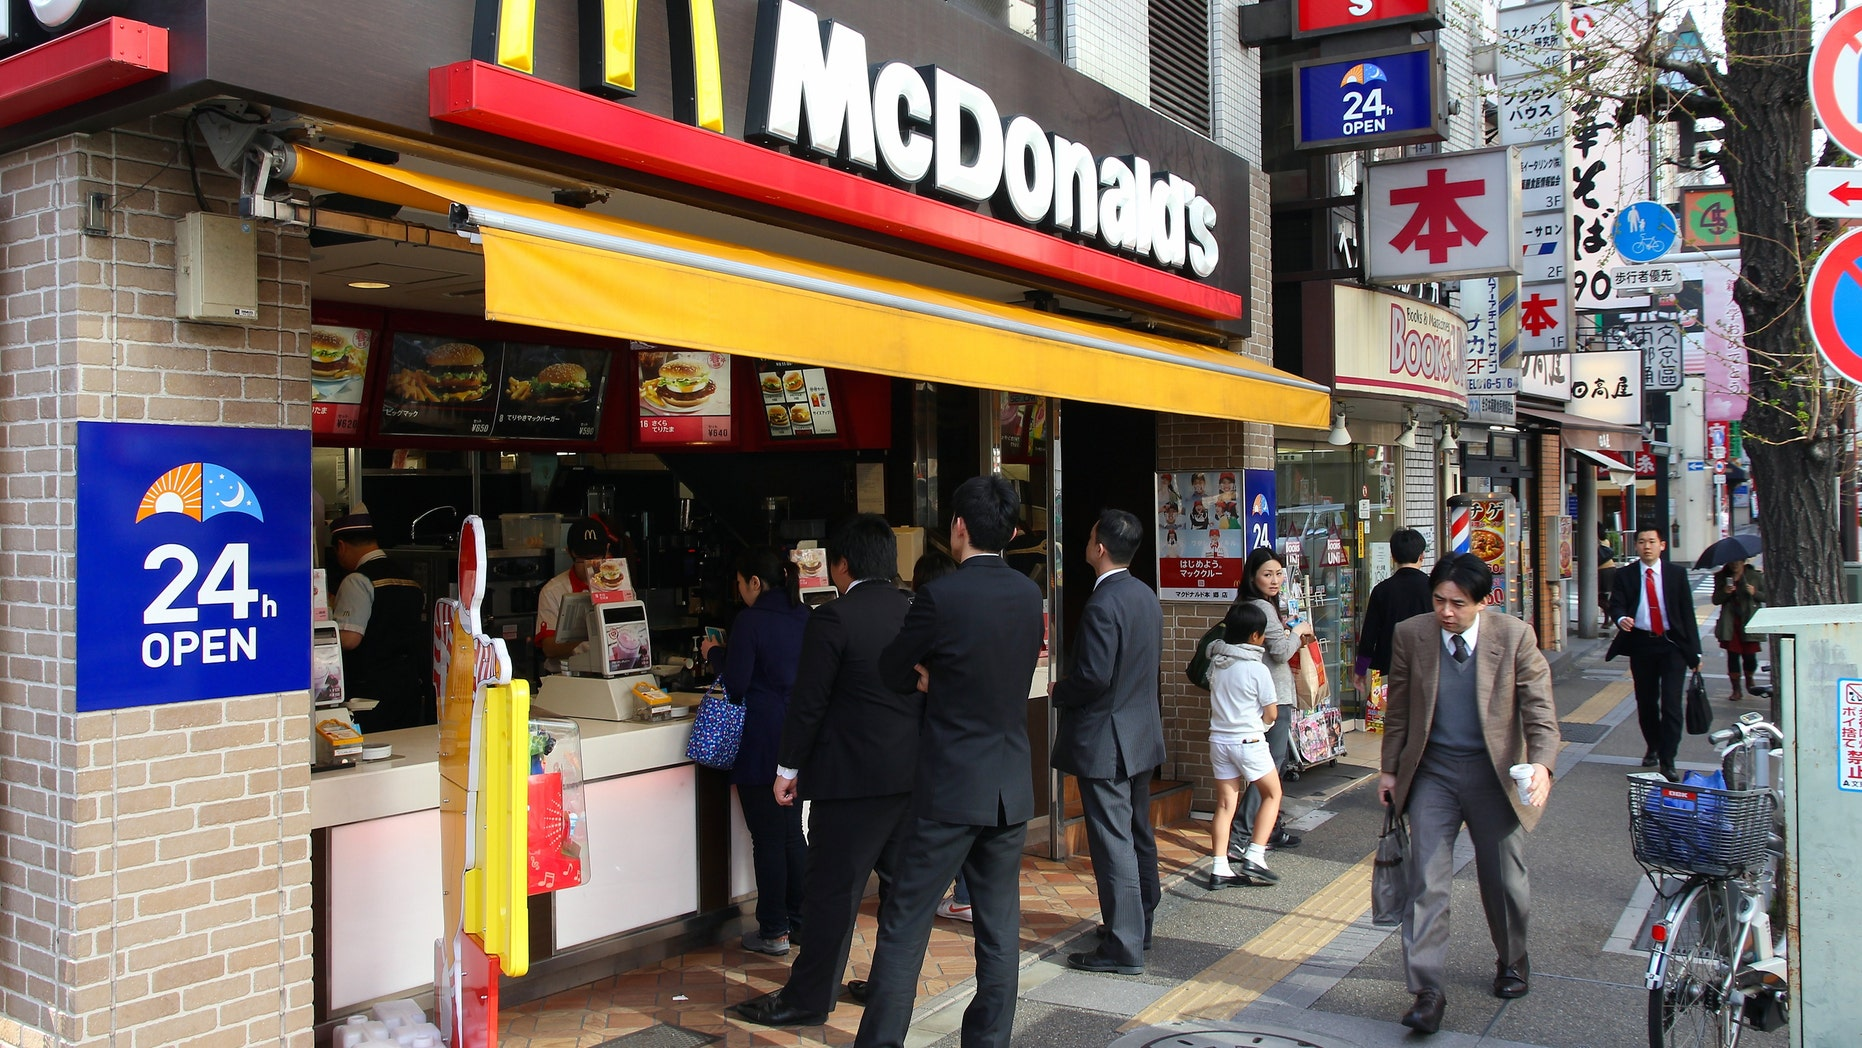 Japan has almost 3,000 McDonald's locations.